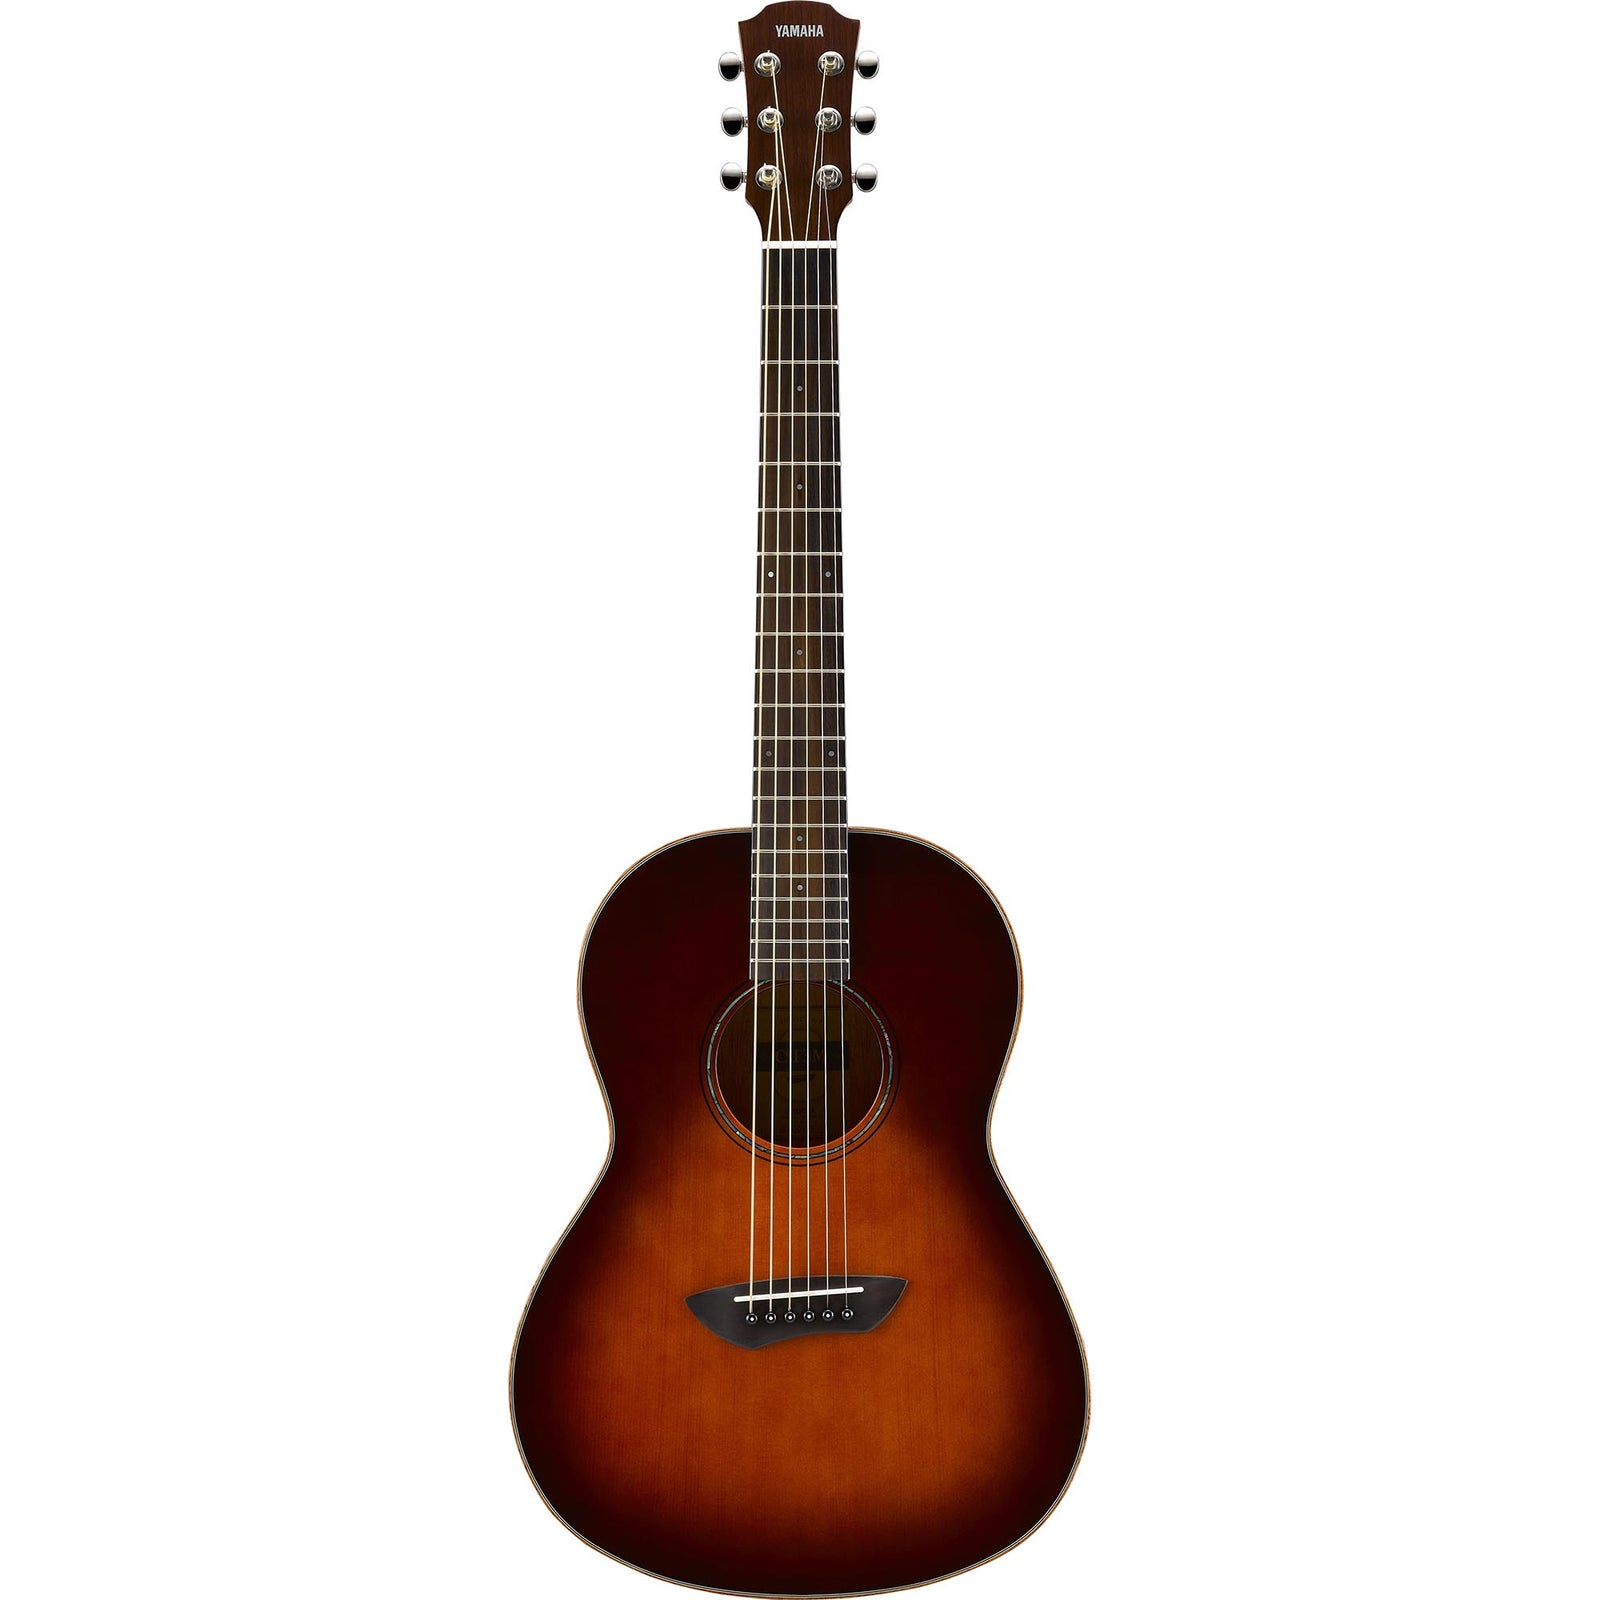 Yamaha Parlor Acoustic Electric All-Solid - Tobacco Brown Sunburst